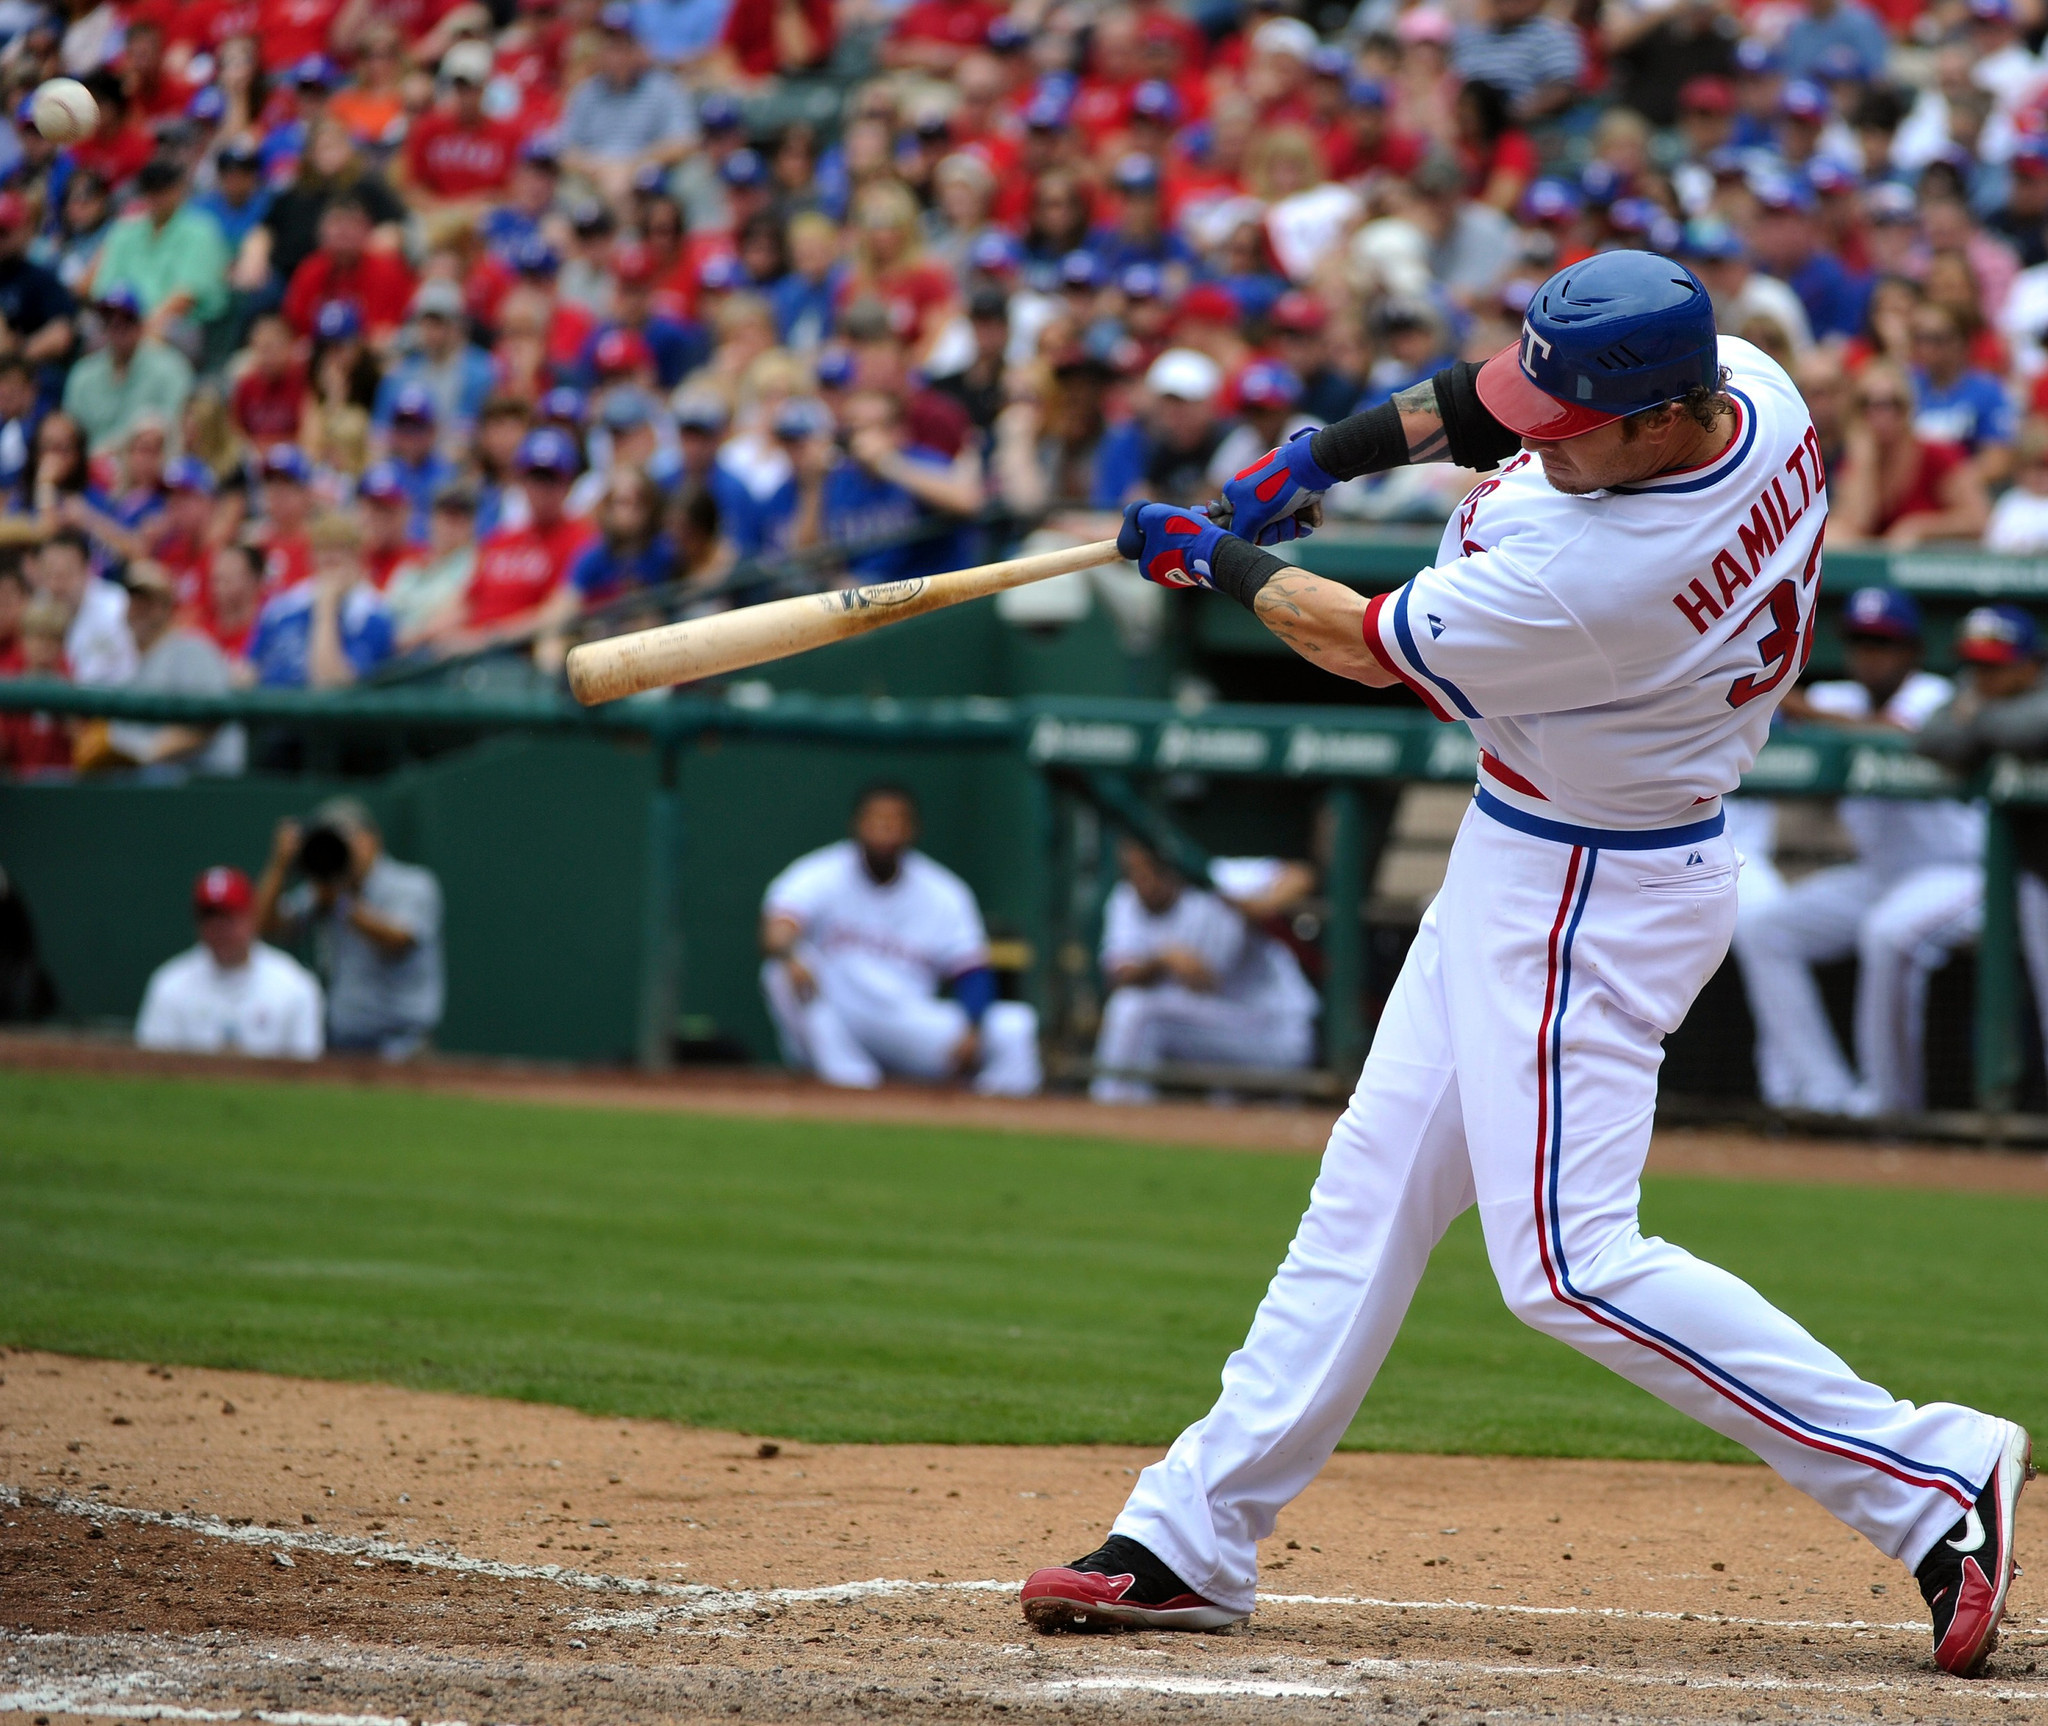 Rangers' Josh Hamilton hits a solo home run in the sixth inning against the Angels.